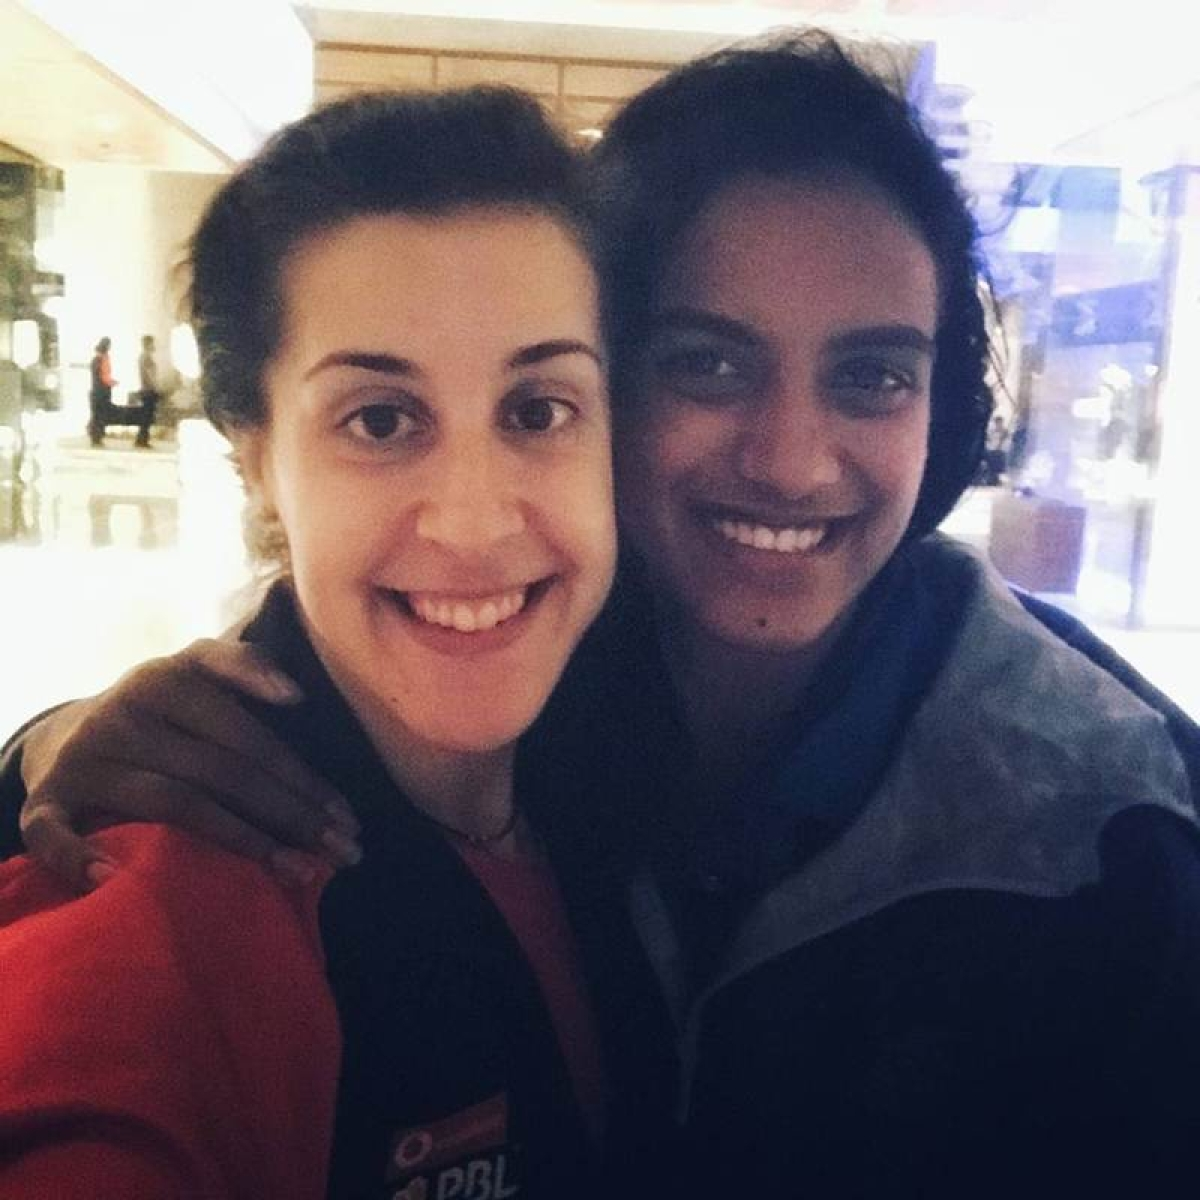 PBL 2018: Carolina Marin shares a selfie with PV Sindhu, gets trolled by HS Prannoy but loved by fans